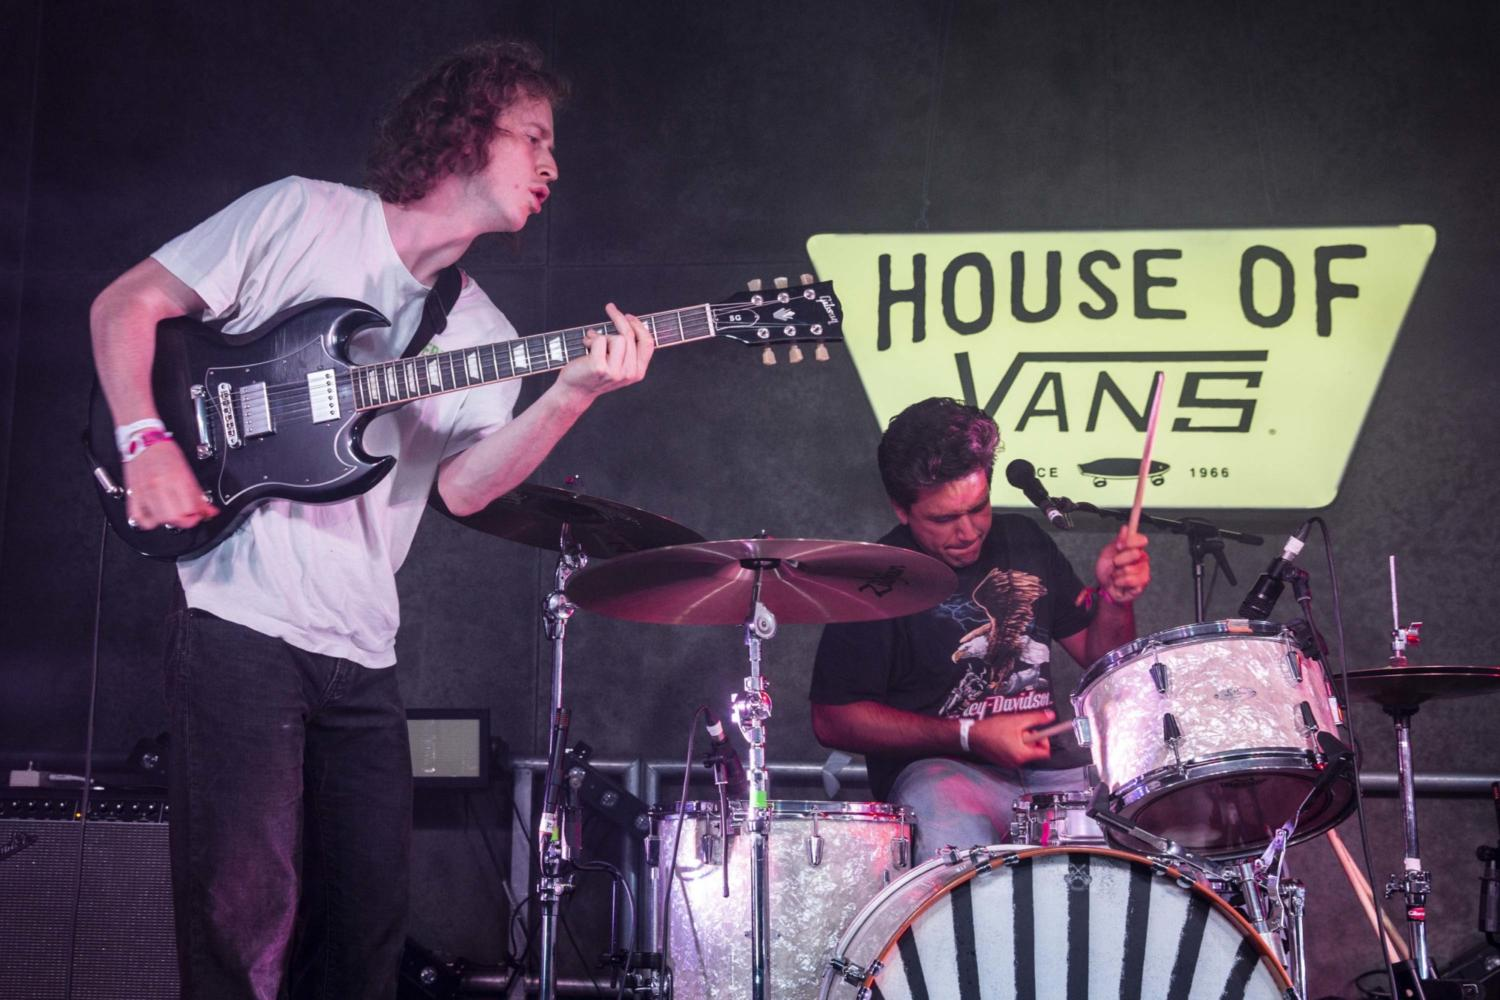 Spring King close Bestival 2018 with a riotous set on the DIY stage at House Of Vans